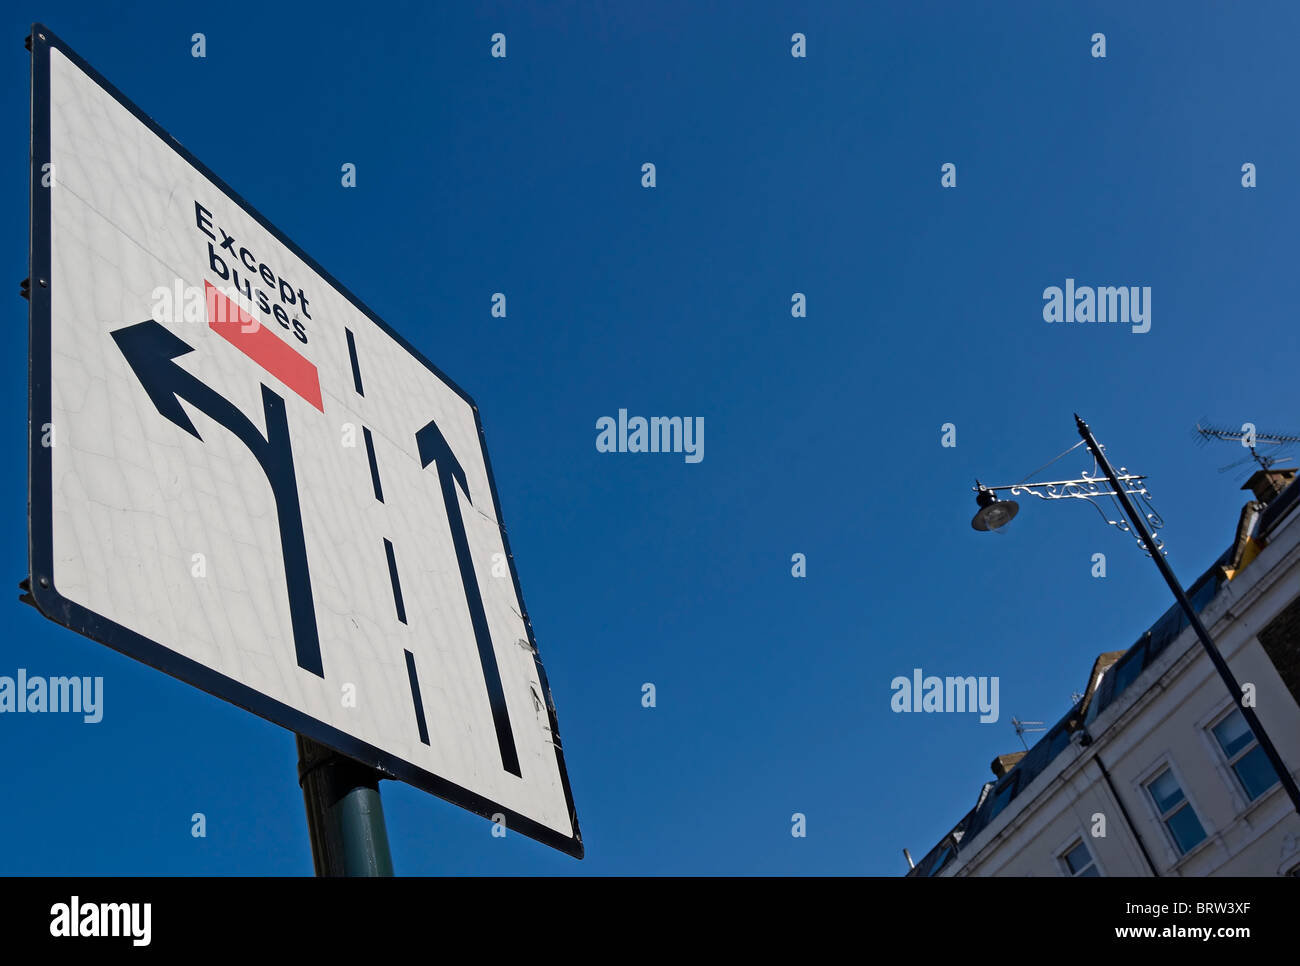 british road sign indicating left hand lane for turning left only, except buses, castelnau, london, england Stock Photo